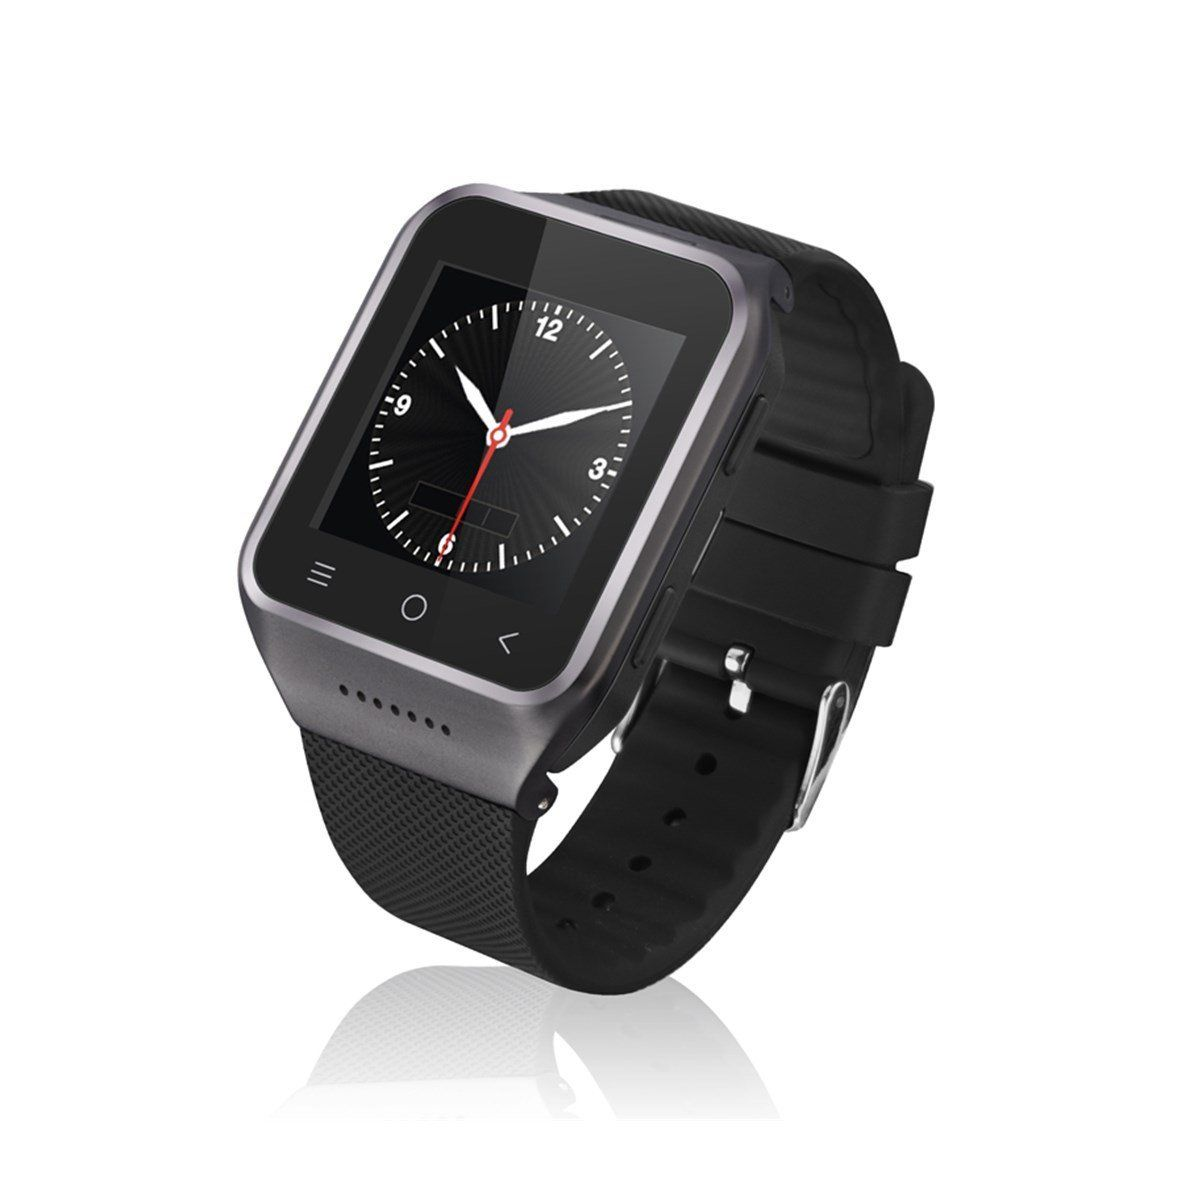 Wemelody GPS Position Smart Watch S8 With SIM Card 3G